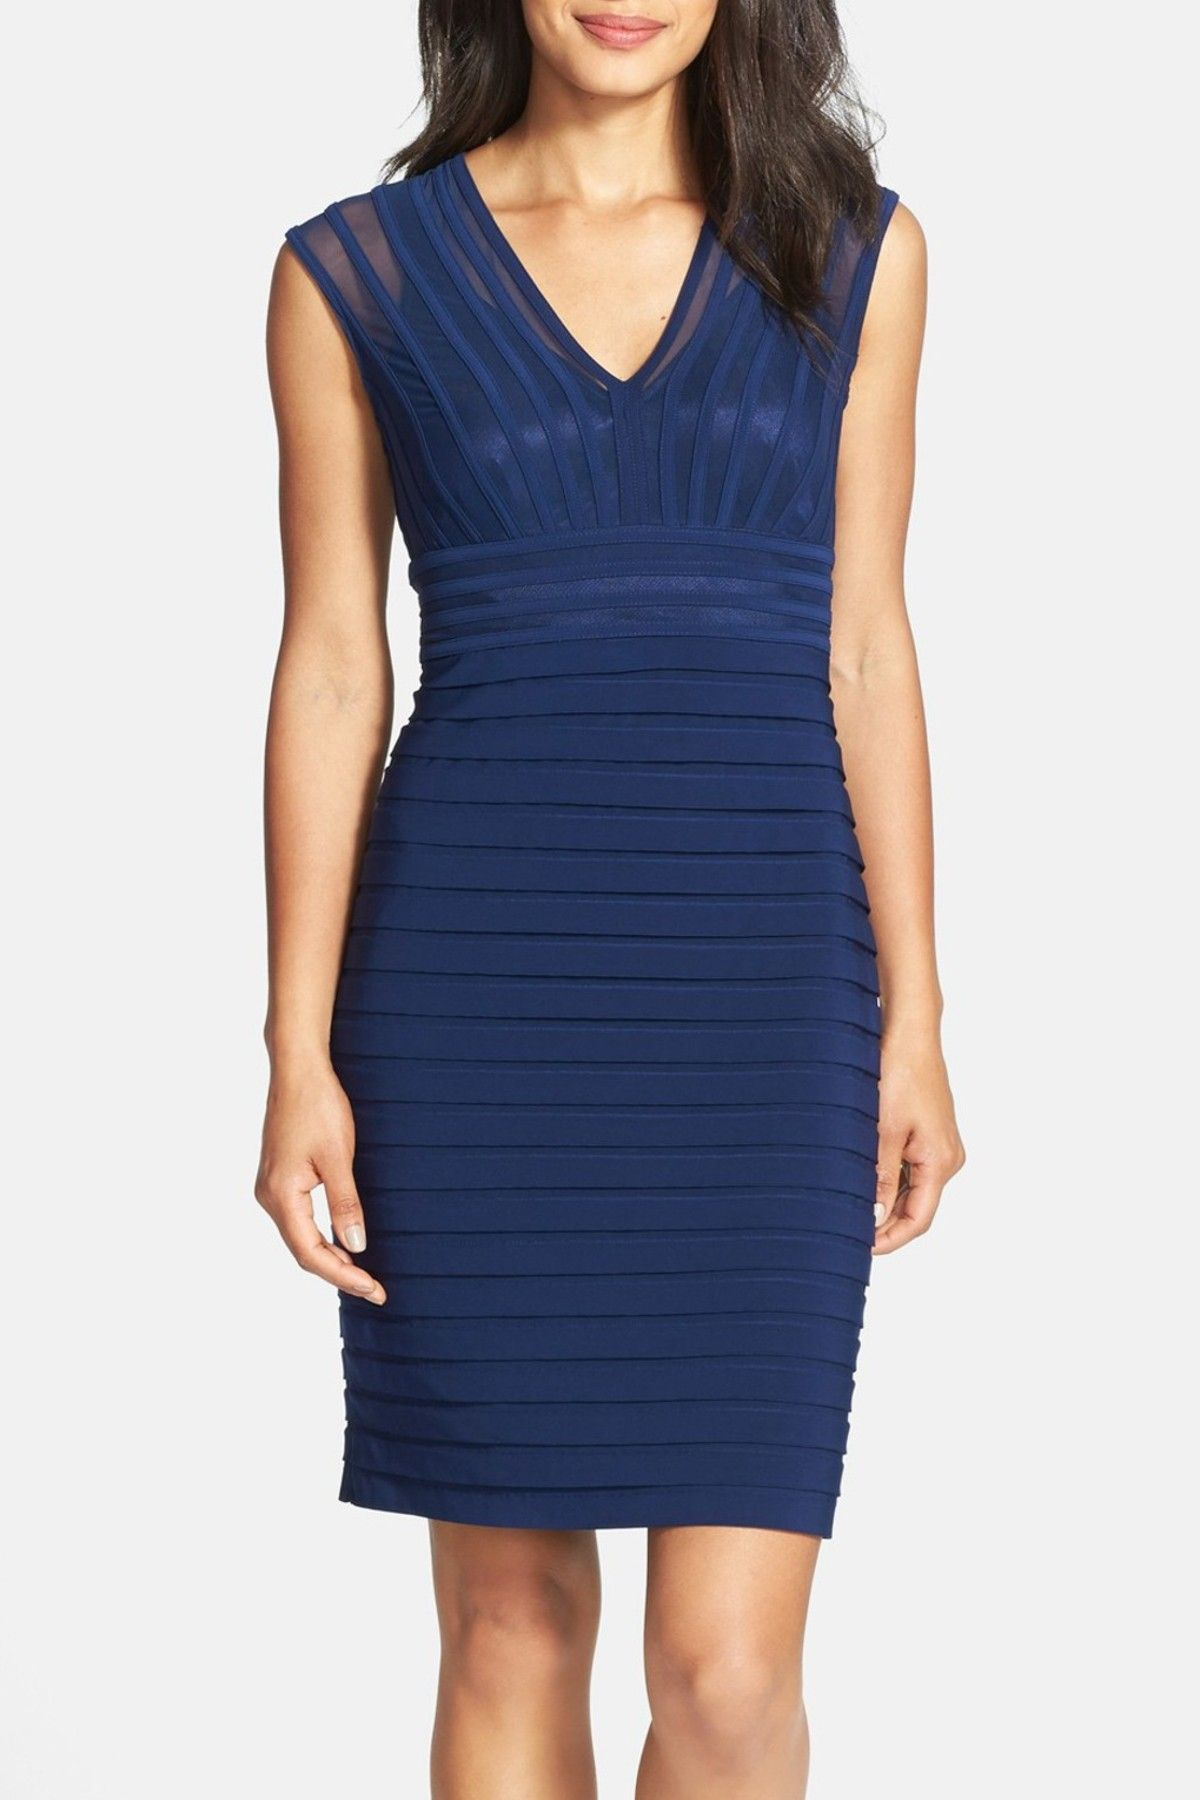 Sheath dresses for wedding guest  Adrianna Papell  Shutter Pleat Jersey Sheath Dress Petite  Products